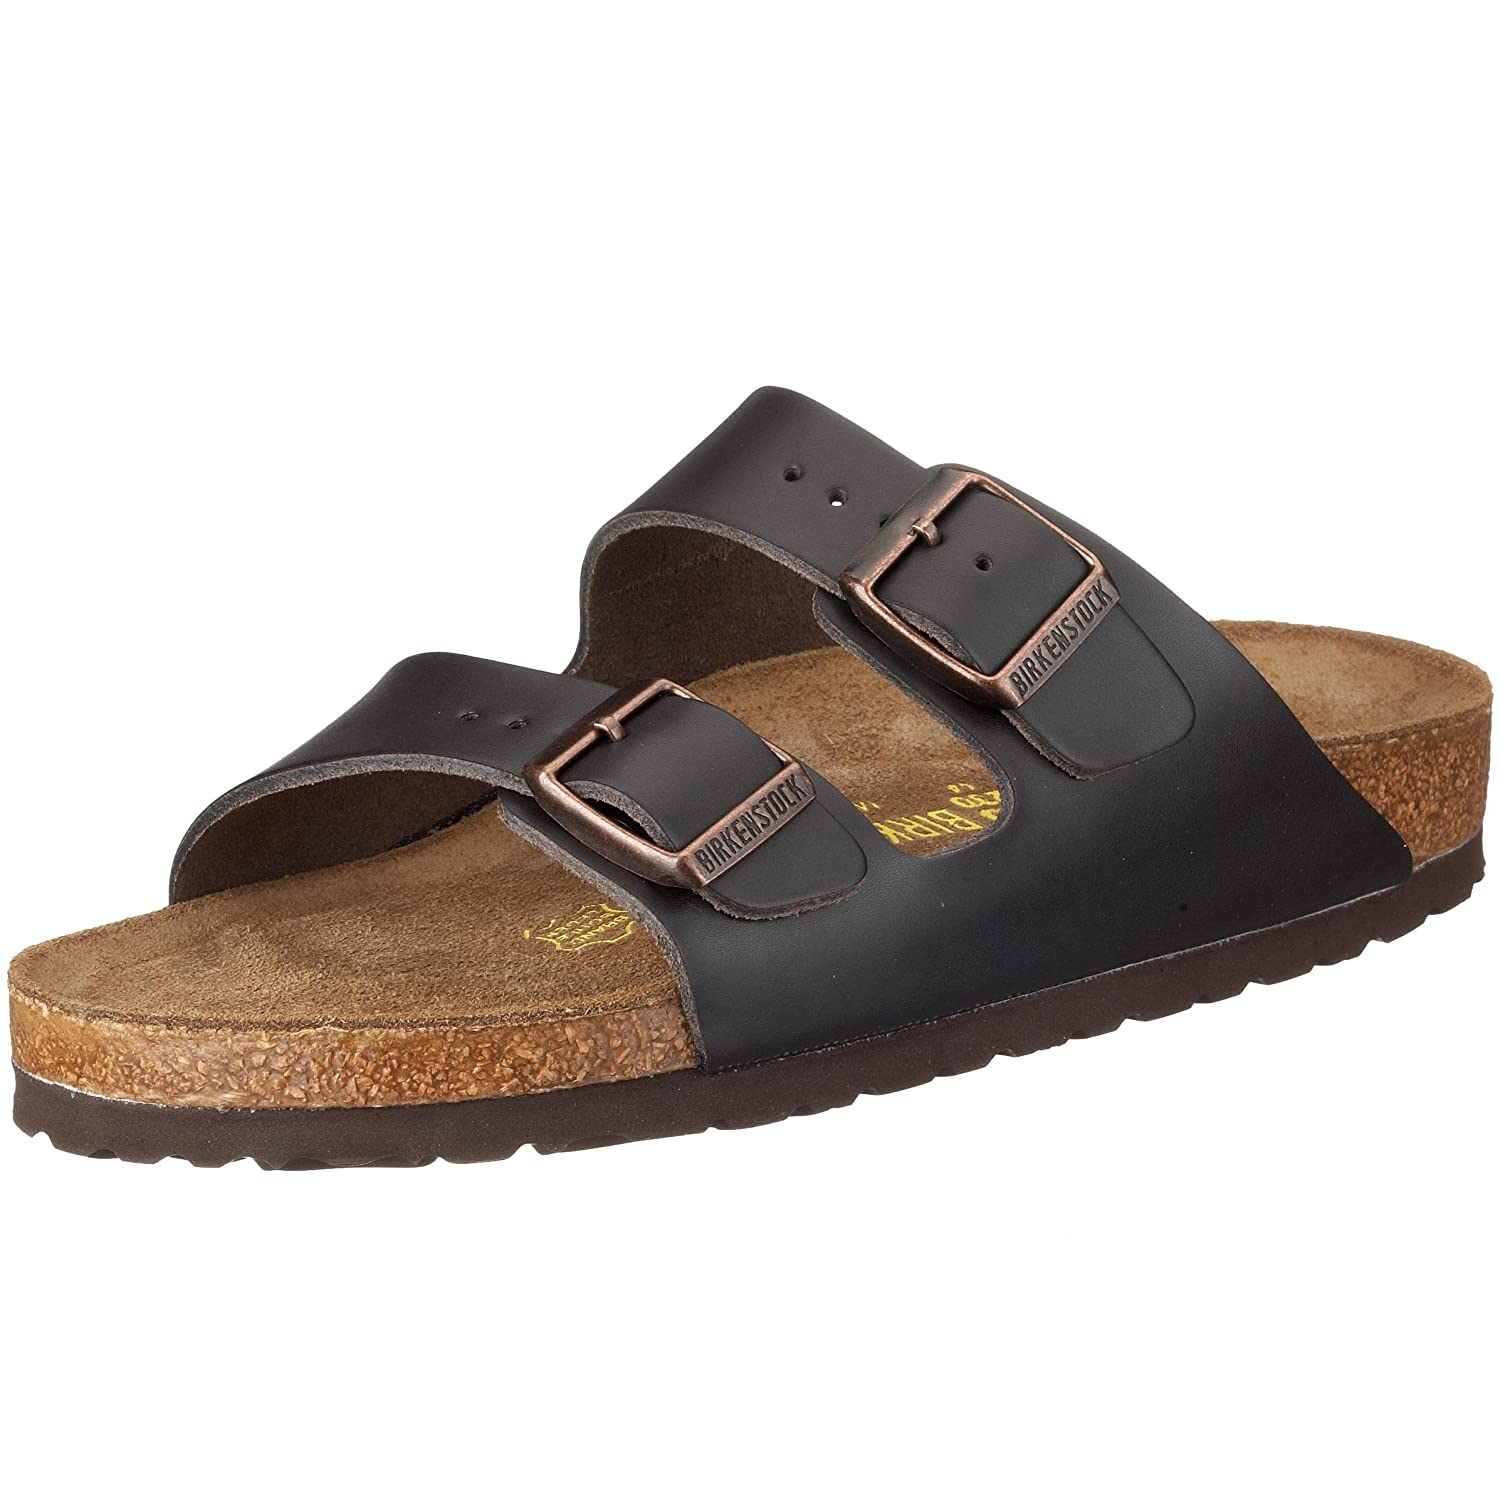 Birkenstock Arizona, Zapatos con Hebilla Unisex Adulto 40 EU (Normal)|Marrón (Brown 551)